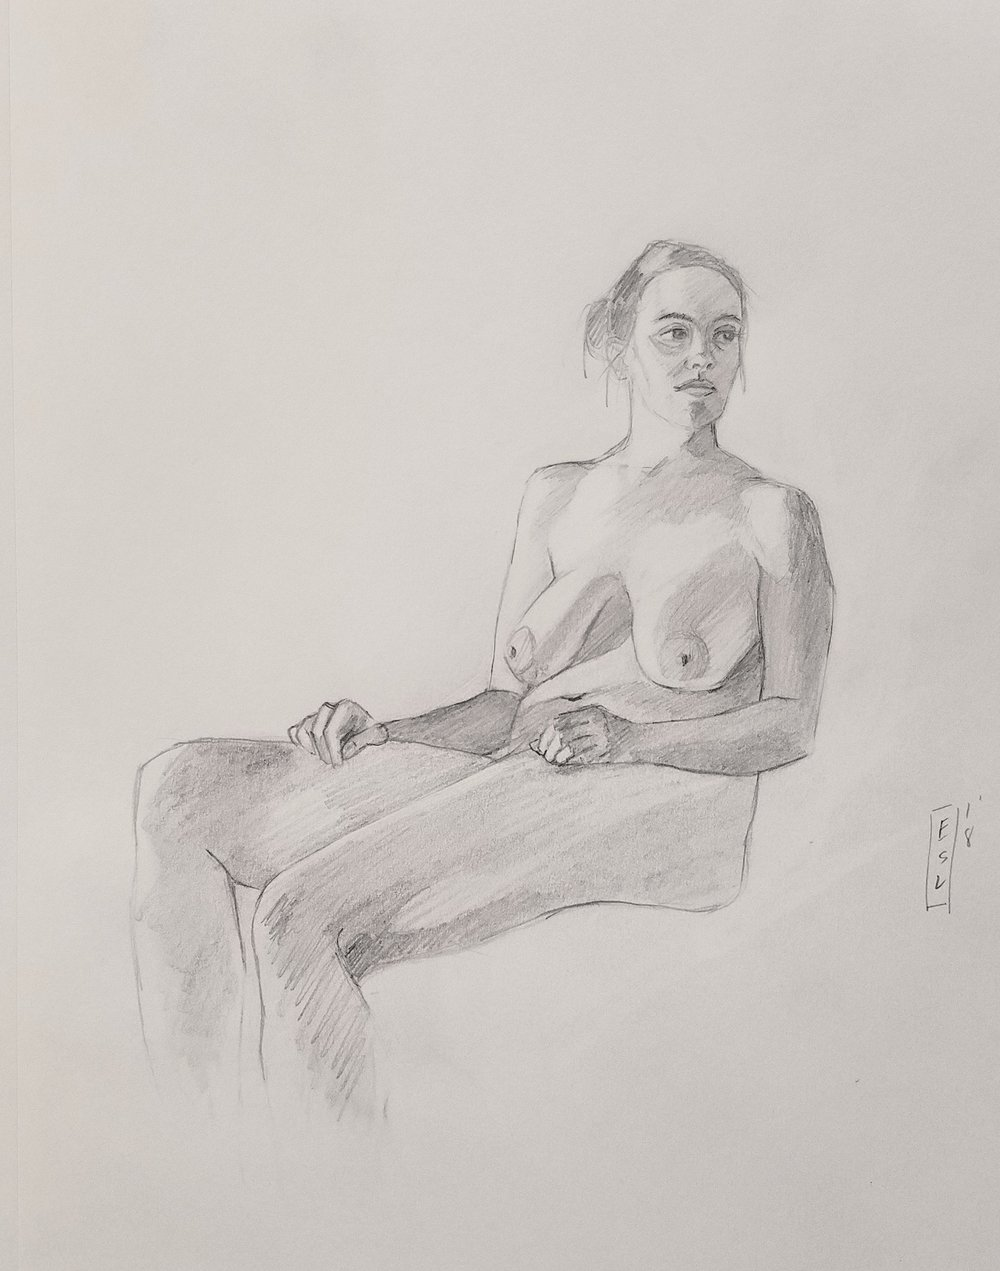 October 1st, 2018 figure drawing